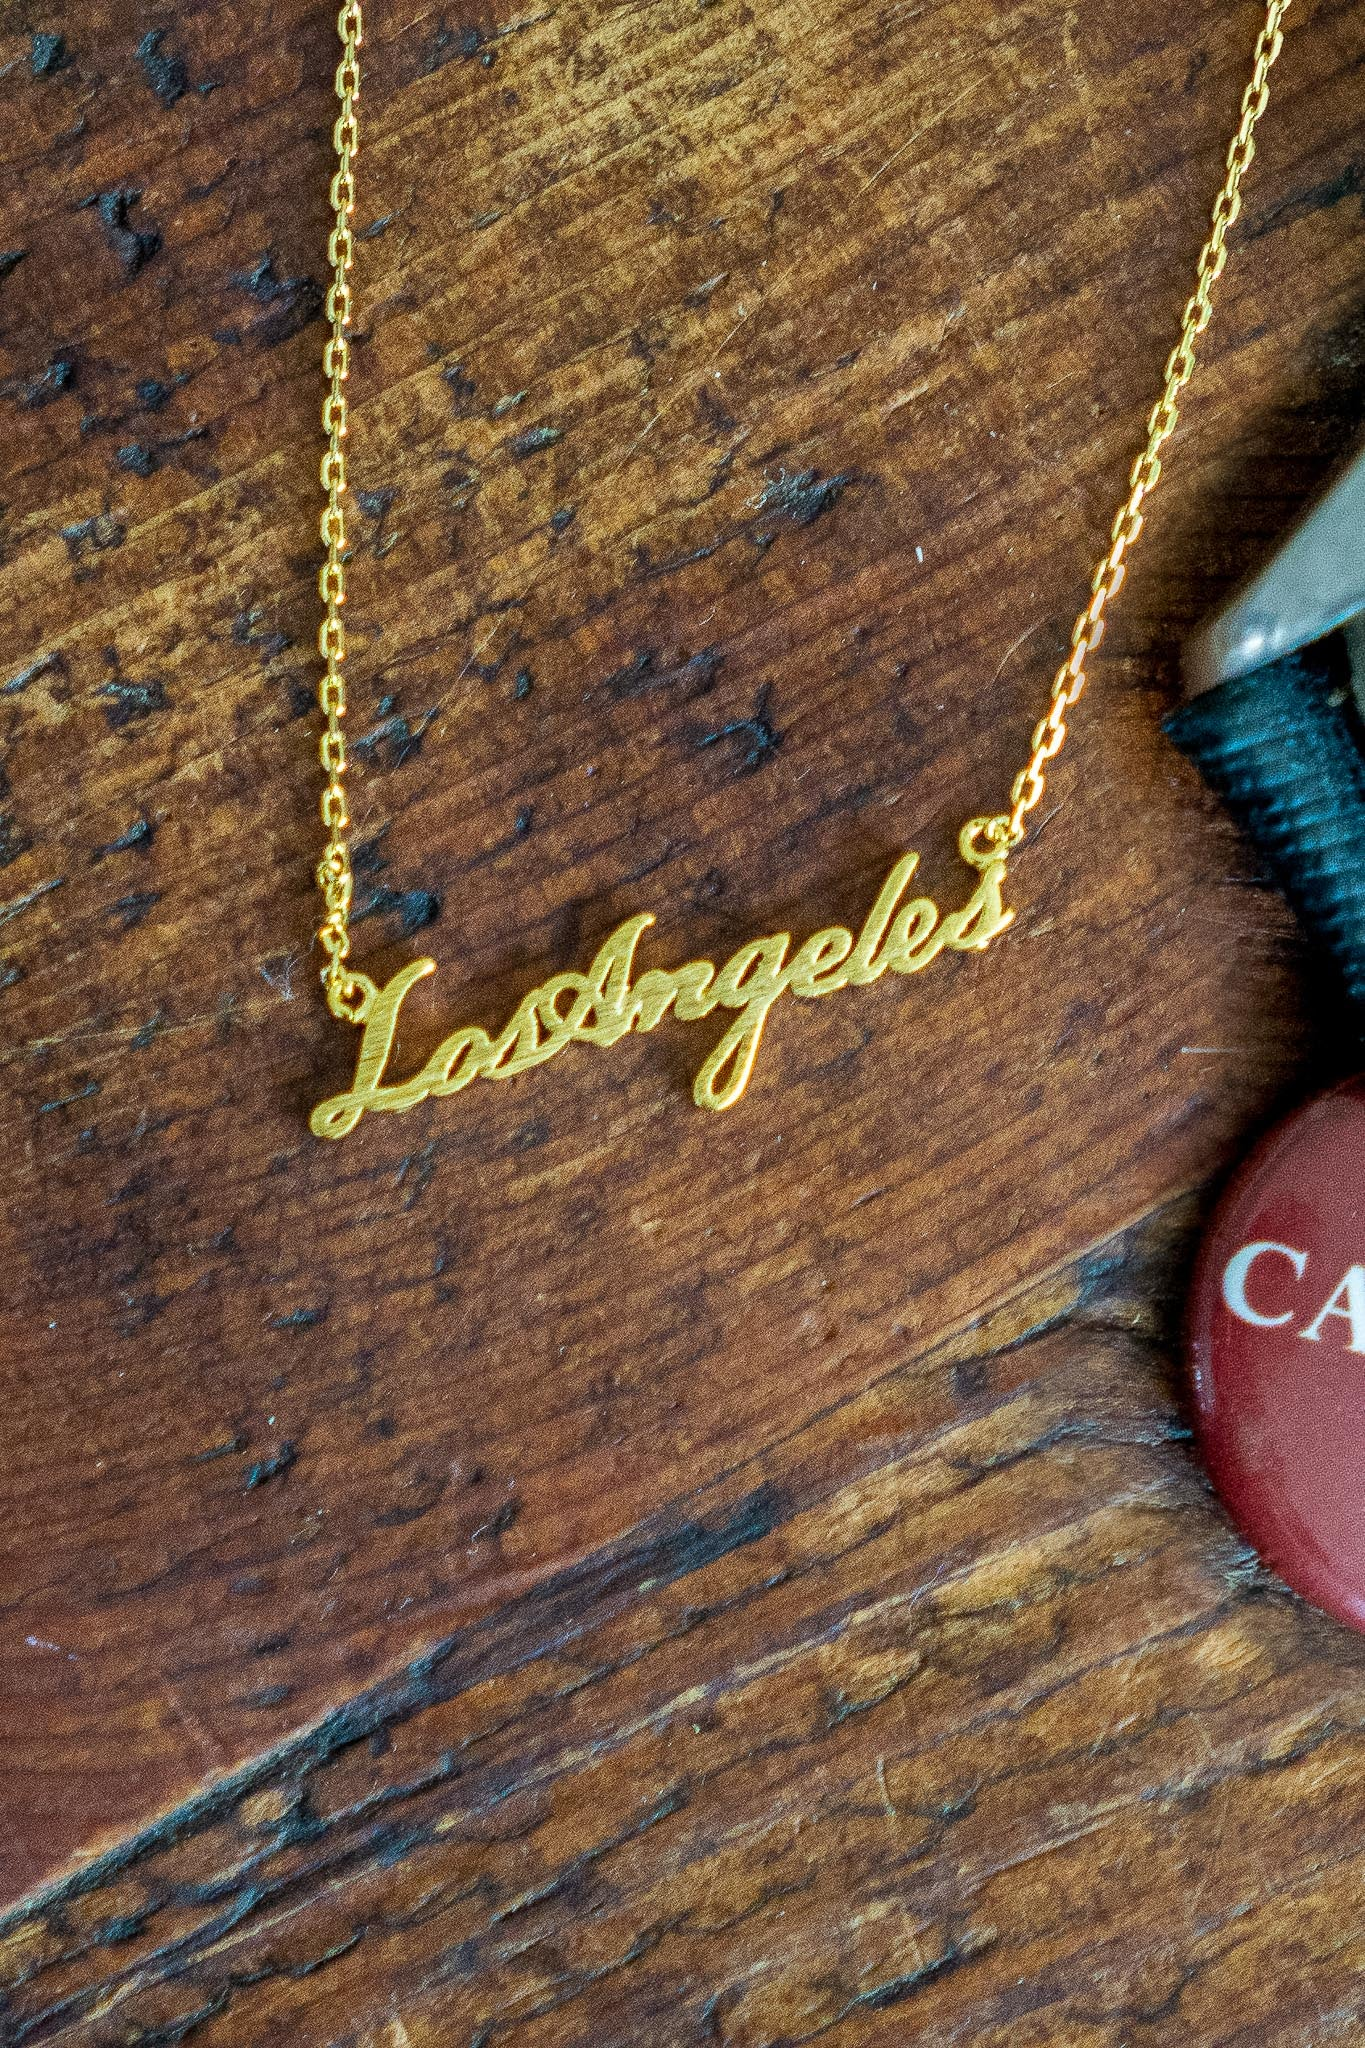 Los Angeles Script Necklace - The Canyon